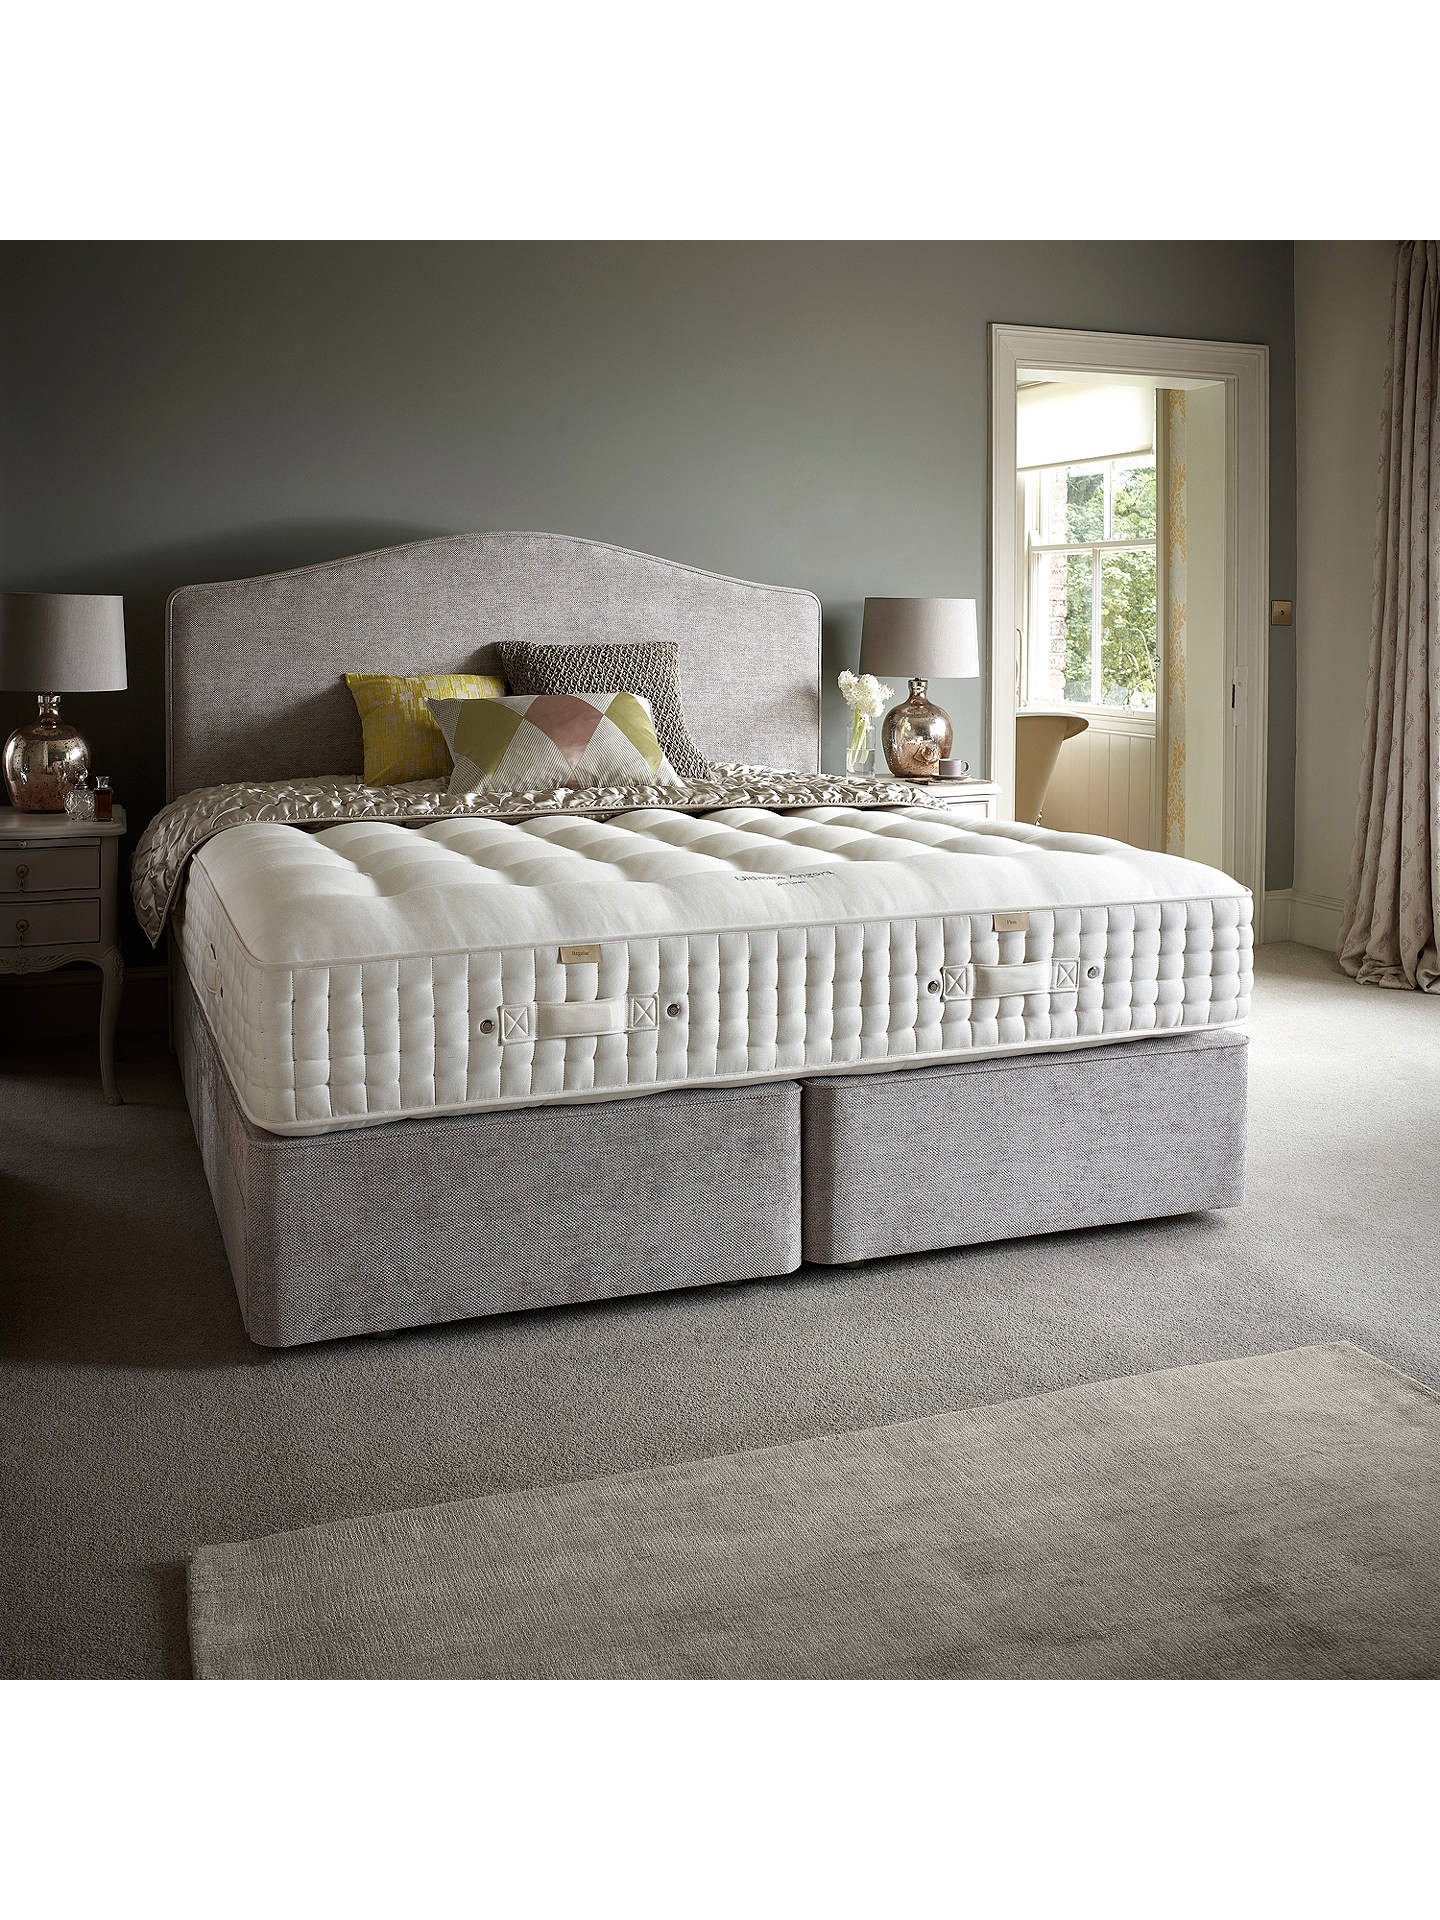 BuyJohn Lewis & Partners The Ultimate Collection Goat Angora Pocket Spring Mattress, Medium, King Size Online at johnlewis.com